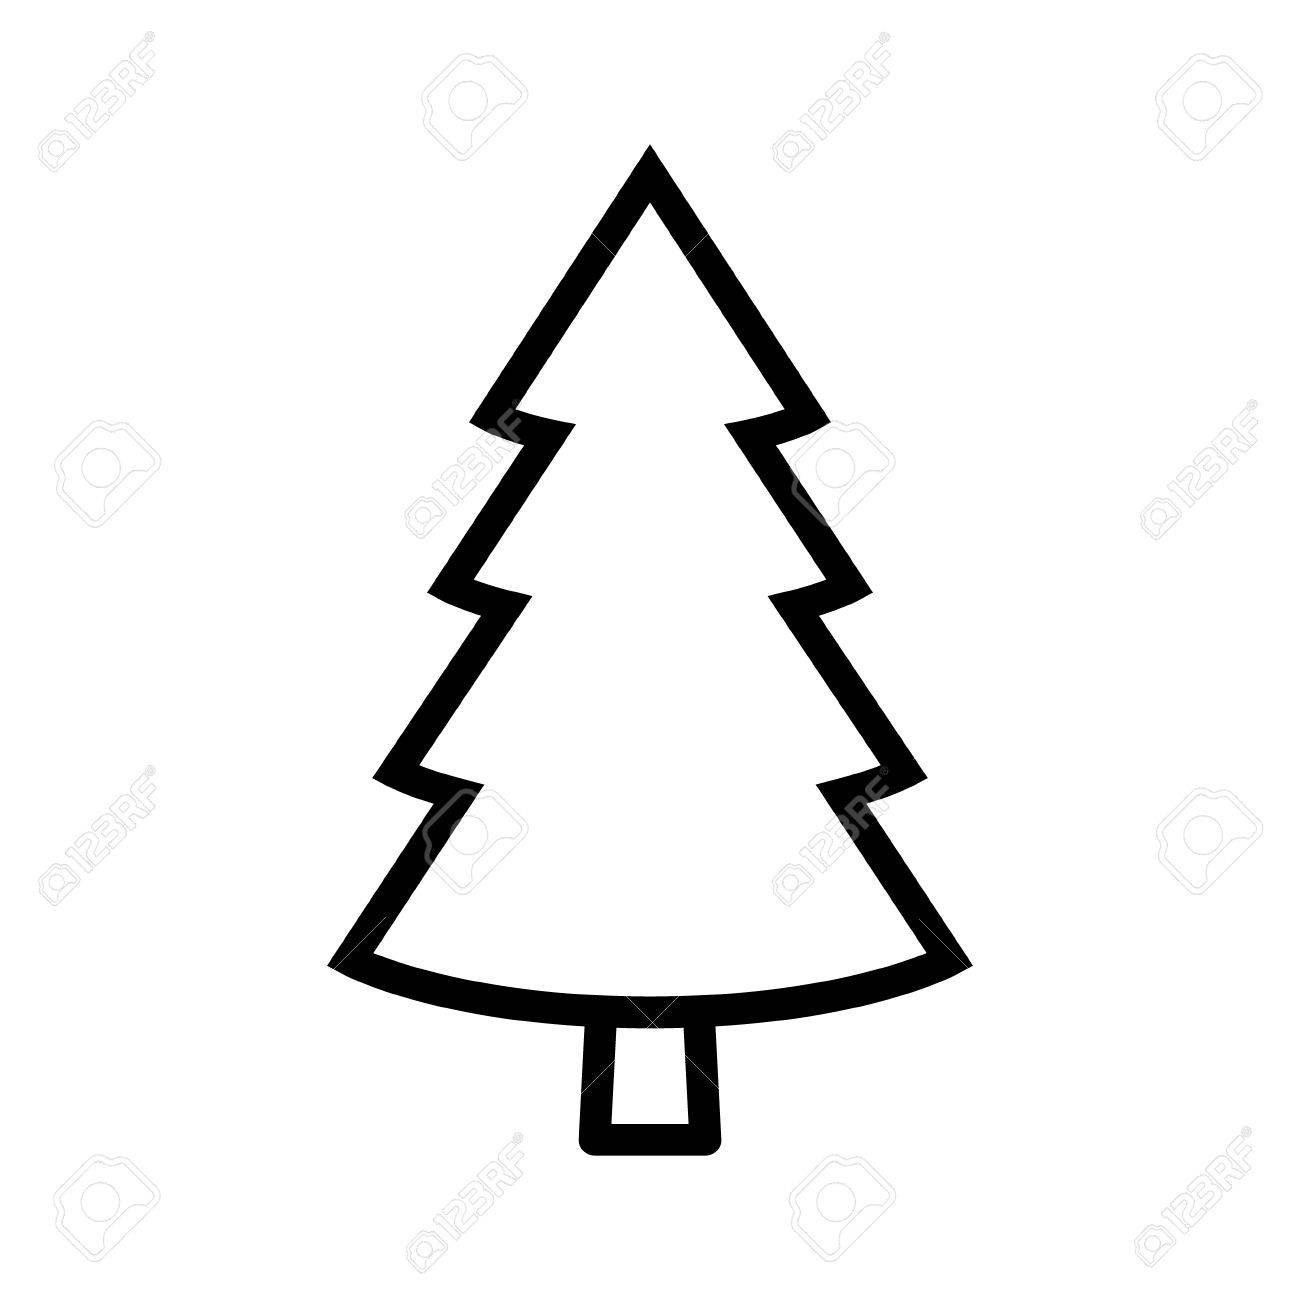 Evergreen Conifer Pine Tree Flat Stylized Line Art Vector Icon For Apps And Websites Stock